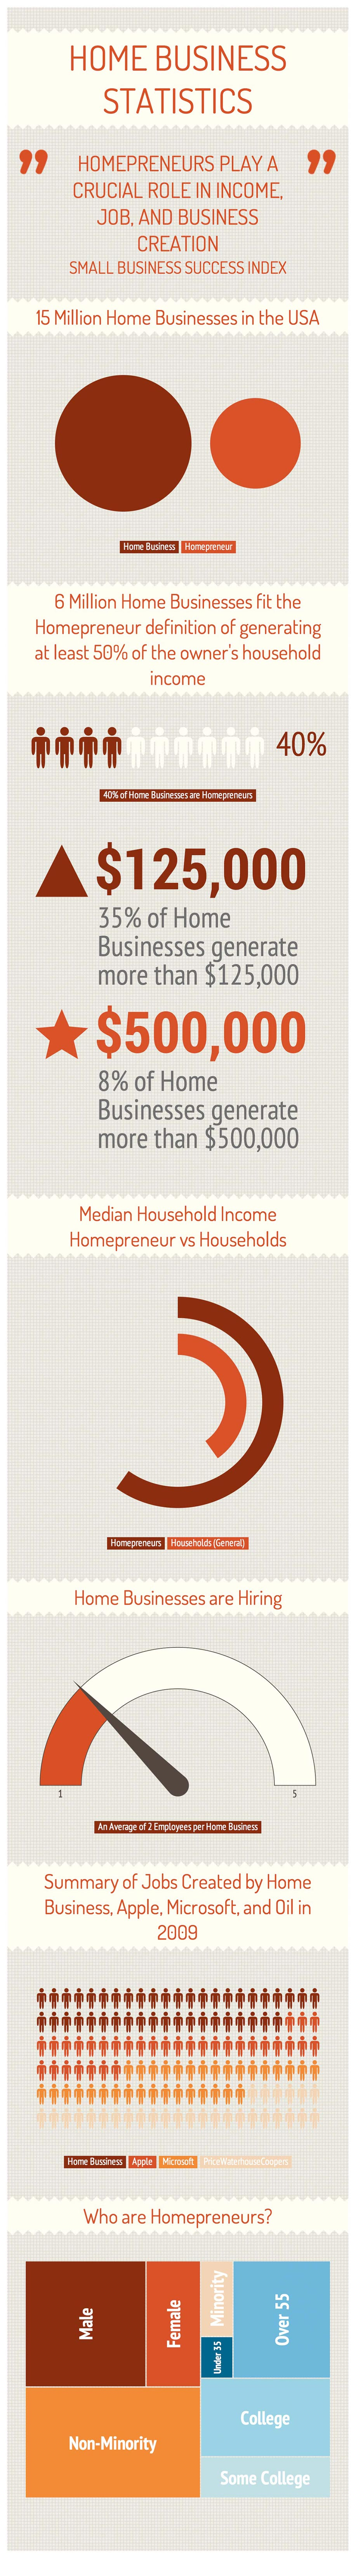 Home Business in USA-Infographic